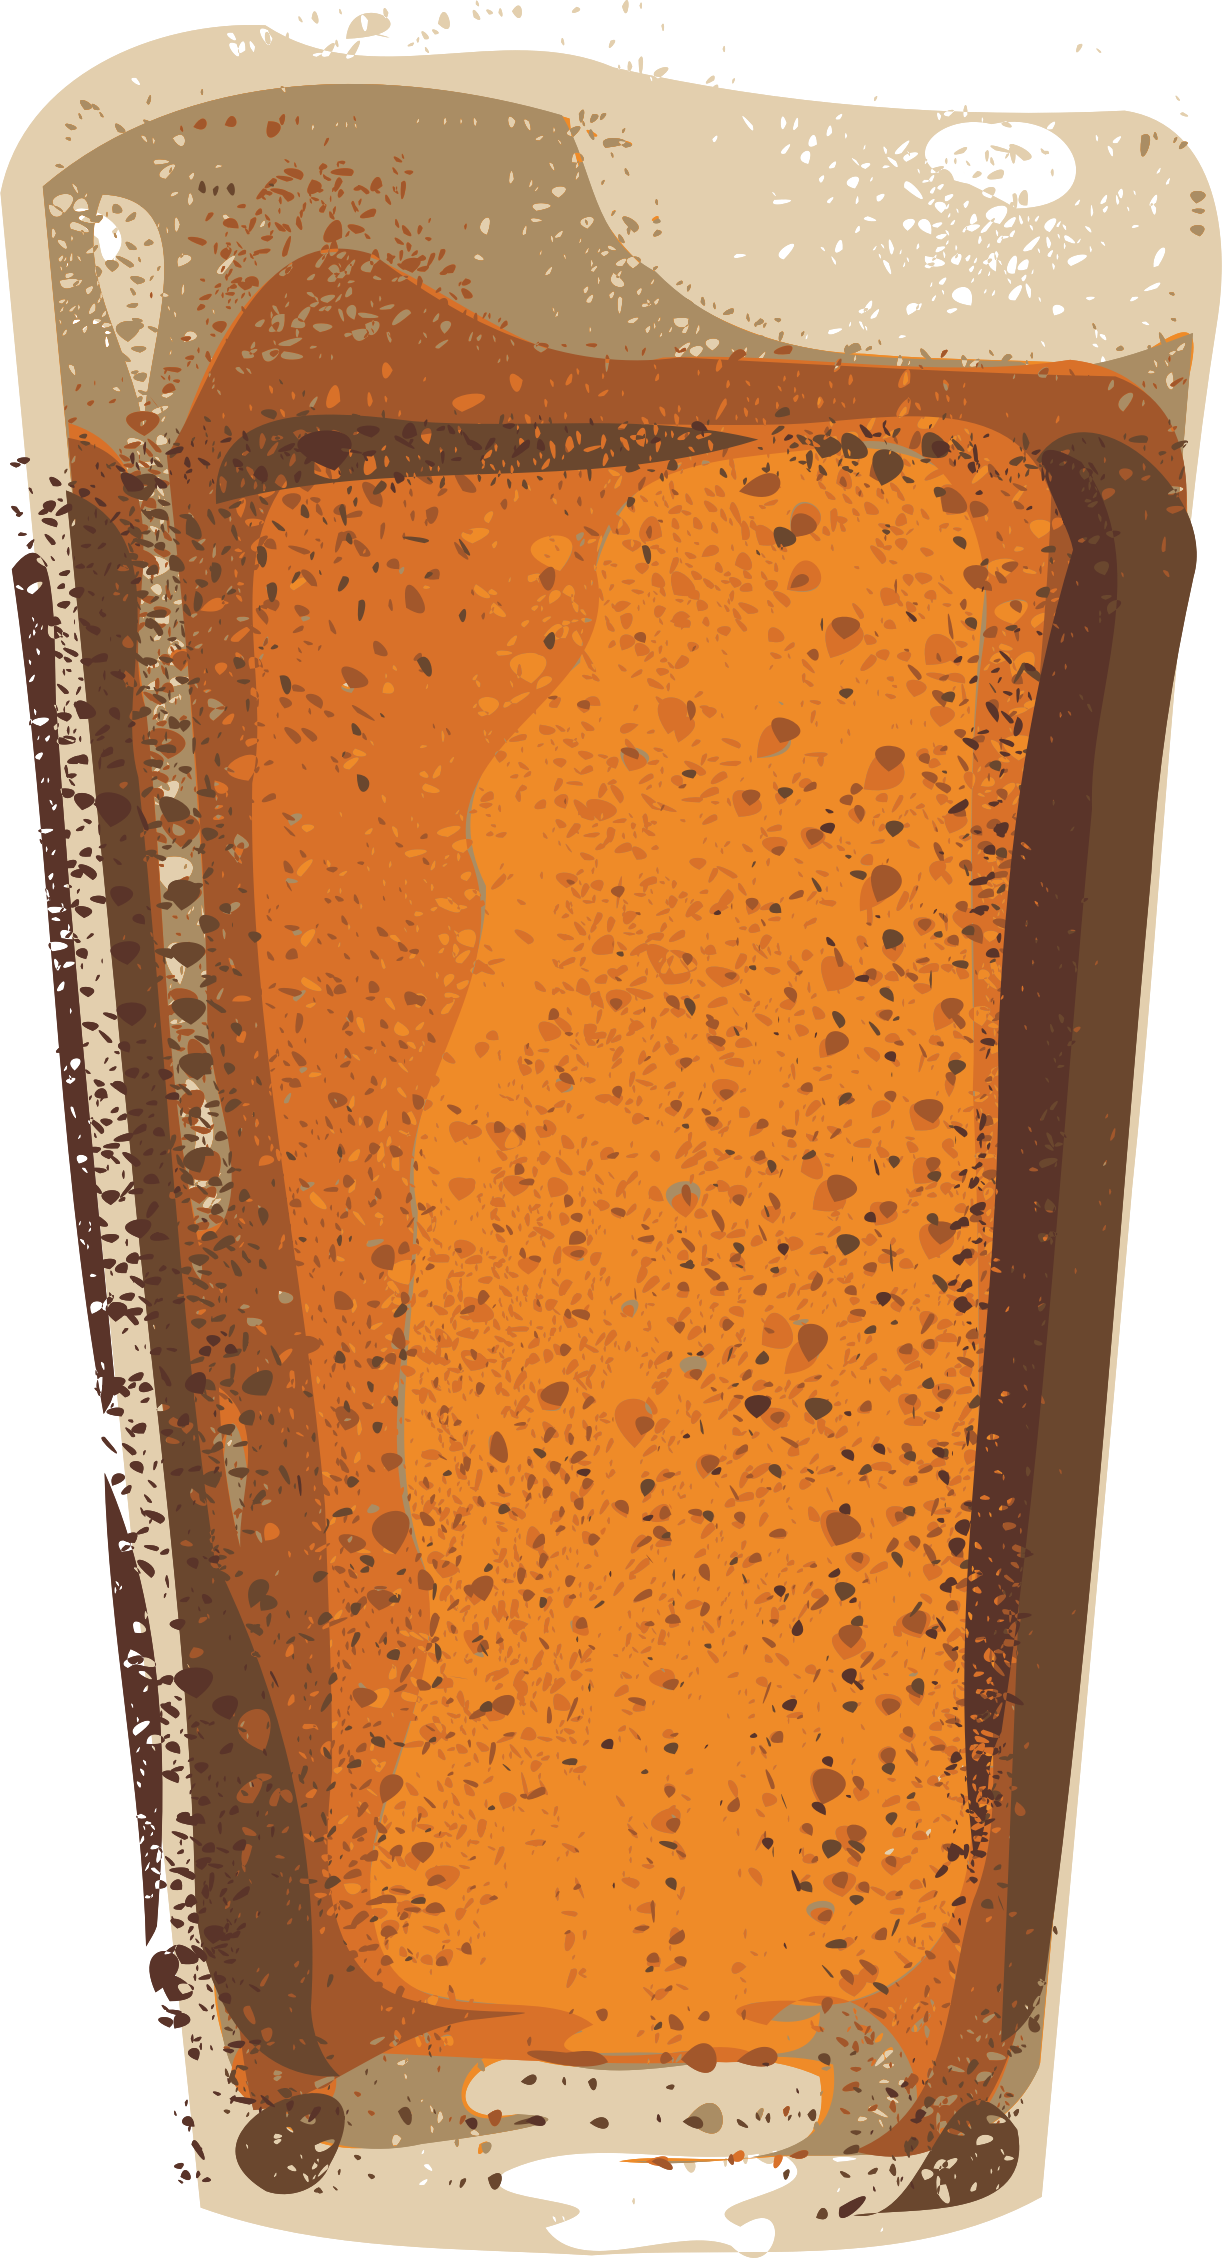 Beer pint glass clipart clip transparent library HD Pint Of Beer Drawing - Beer Pint Glass Clipart Transparent PNG ... clip transparent library